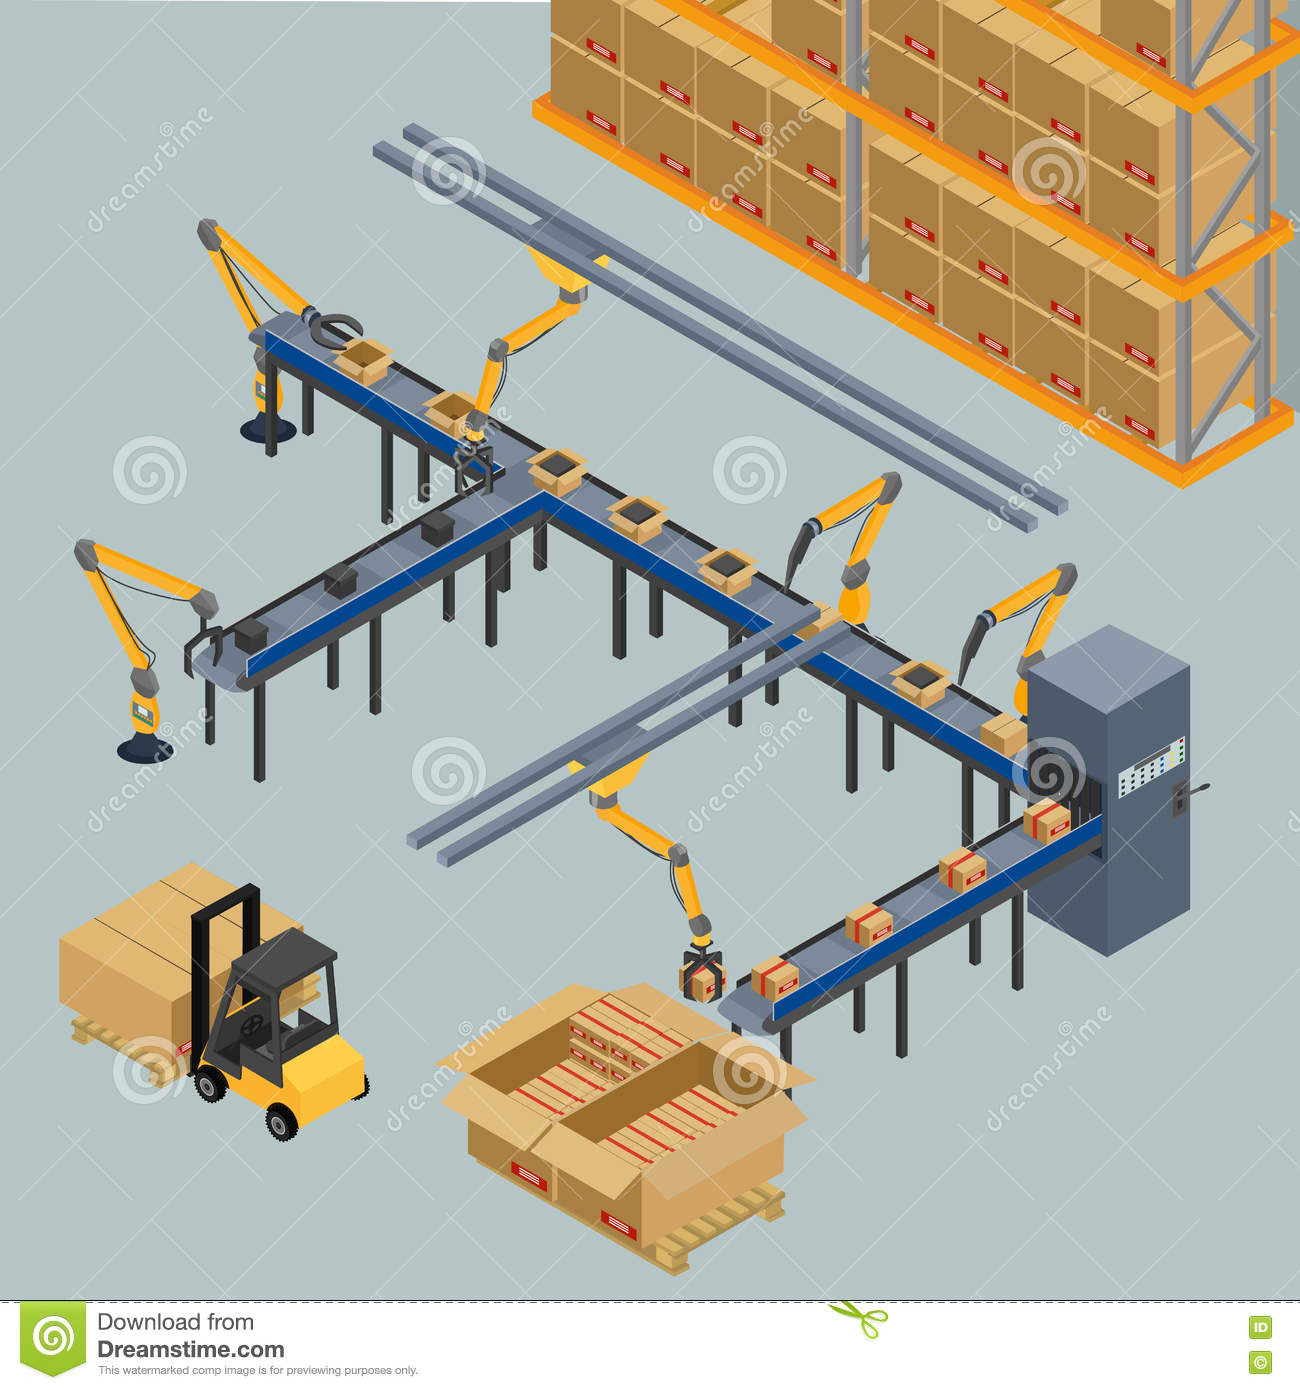 Automatic belt conveyor, stock vector. Image of design ...